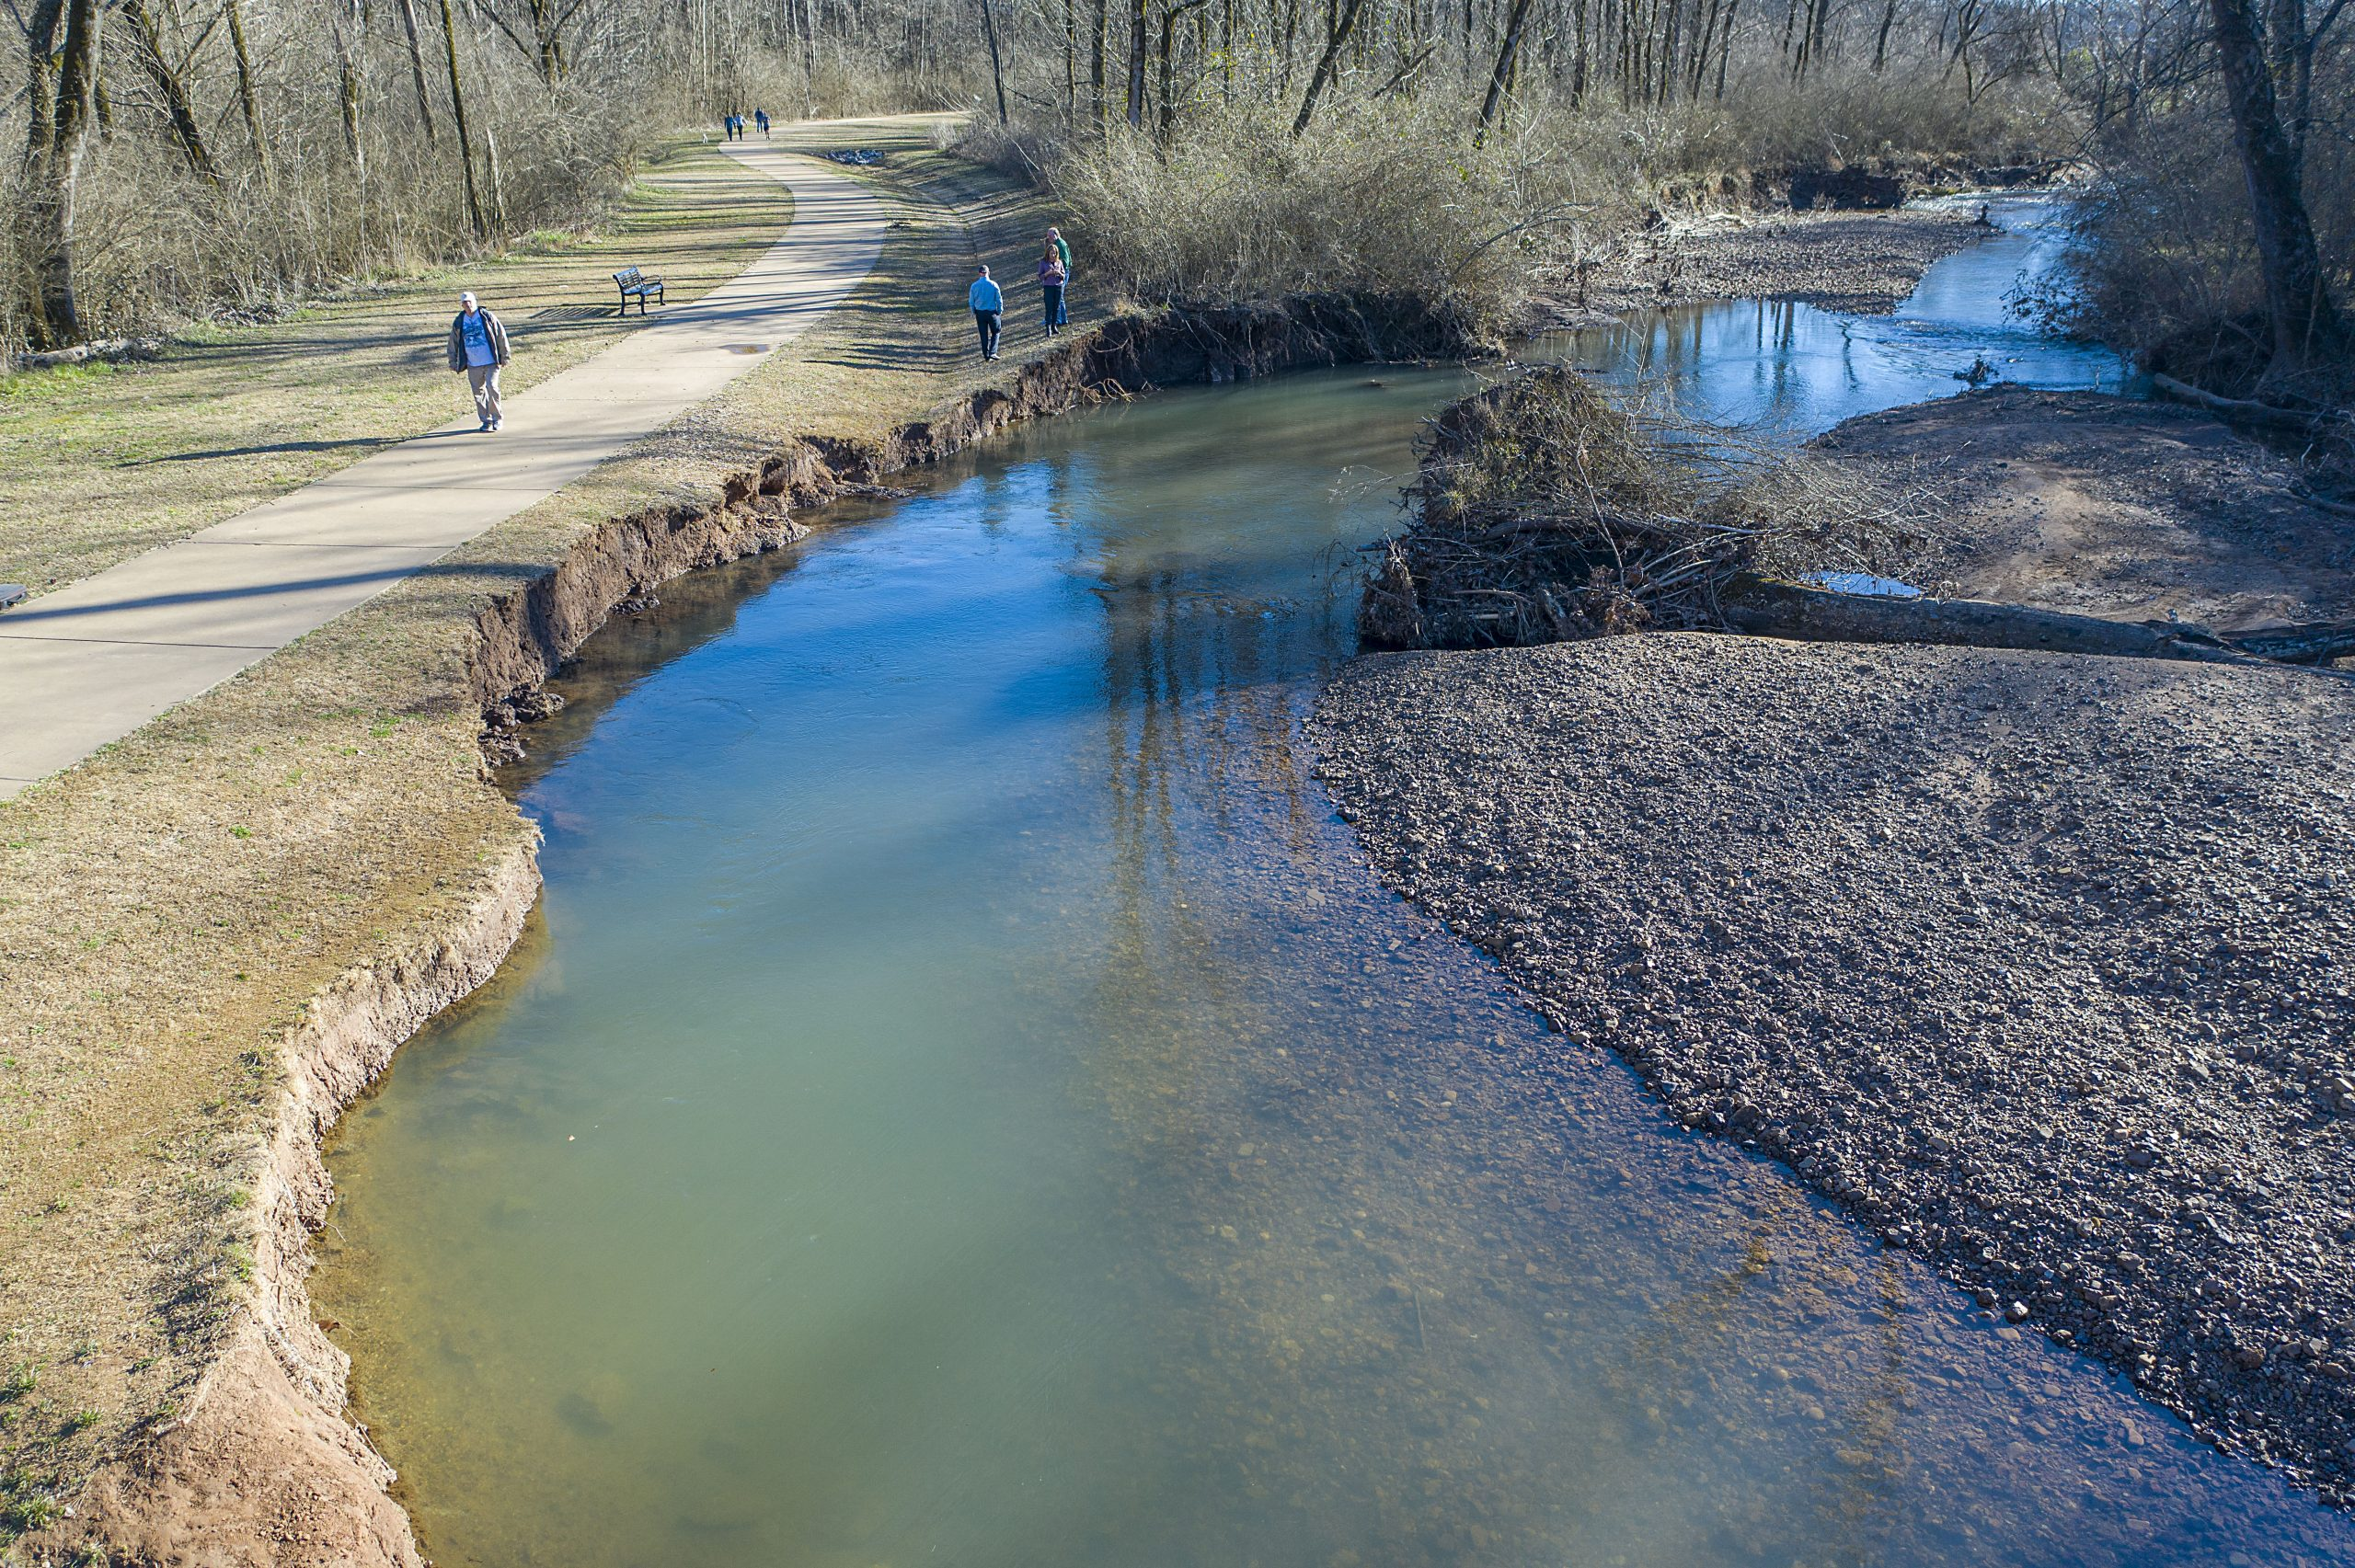 Severe erosion on Cahaba threatening part of Trussville's greenway